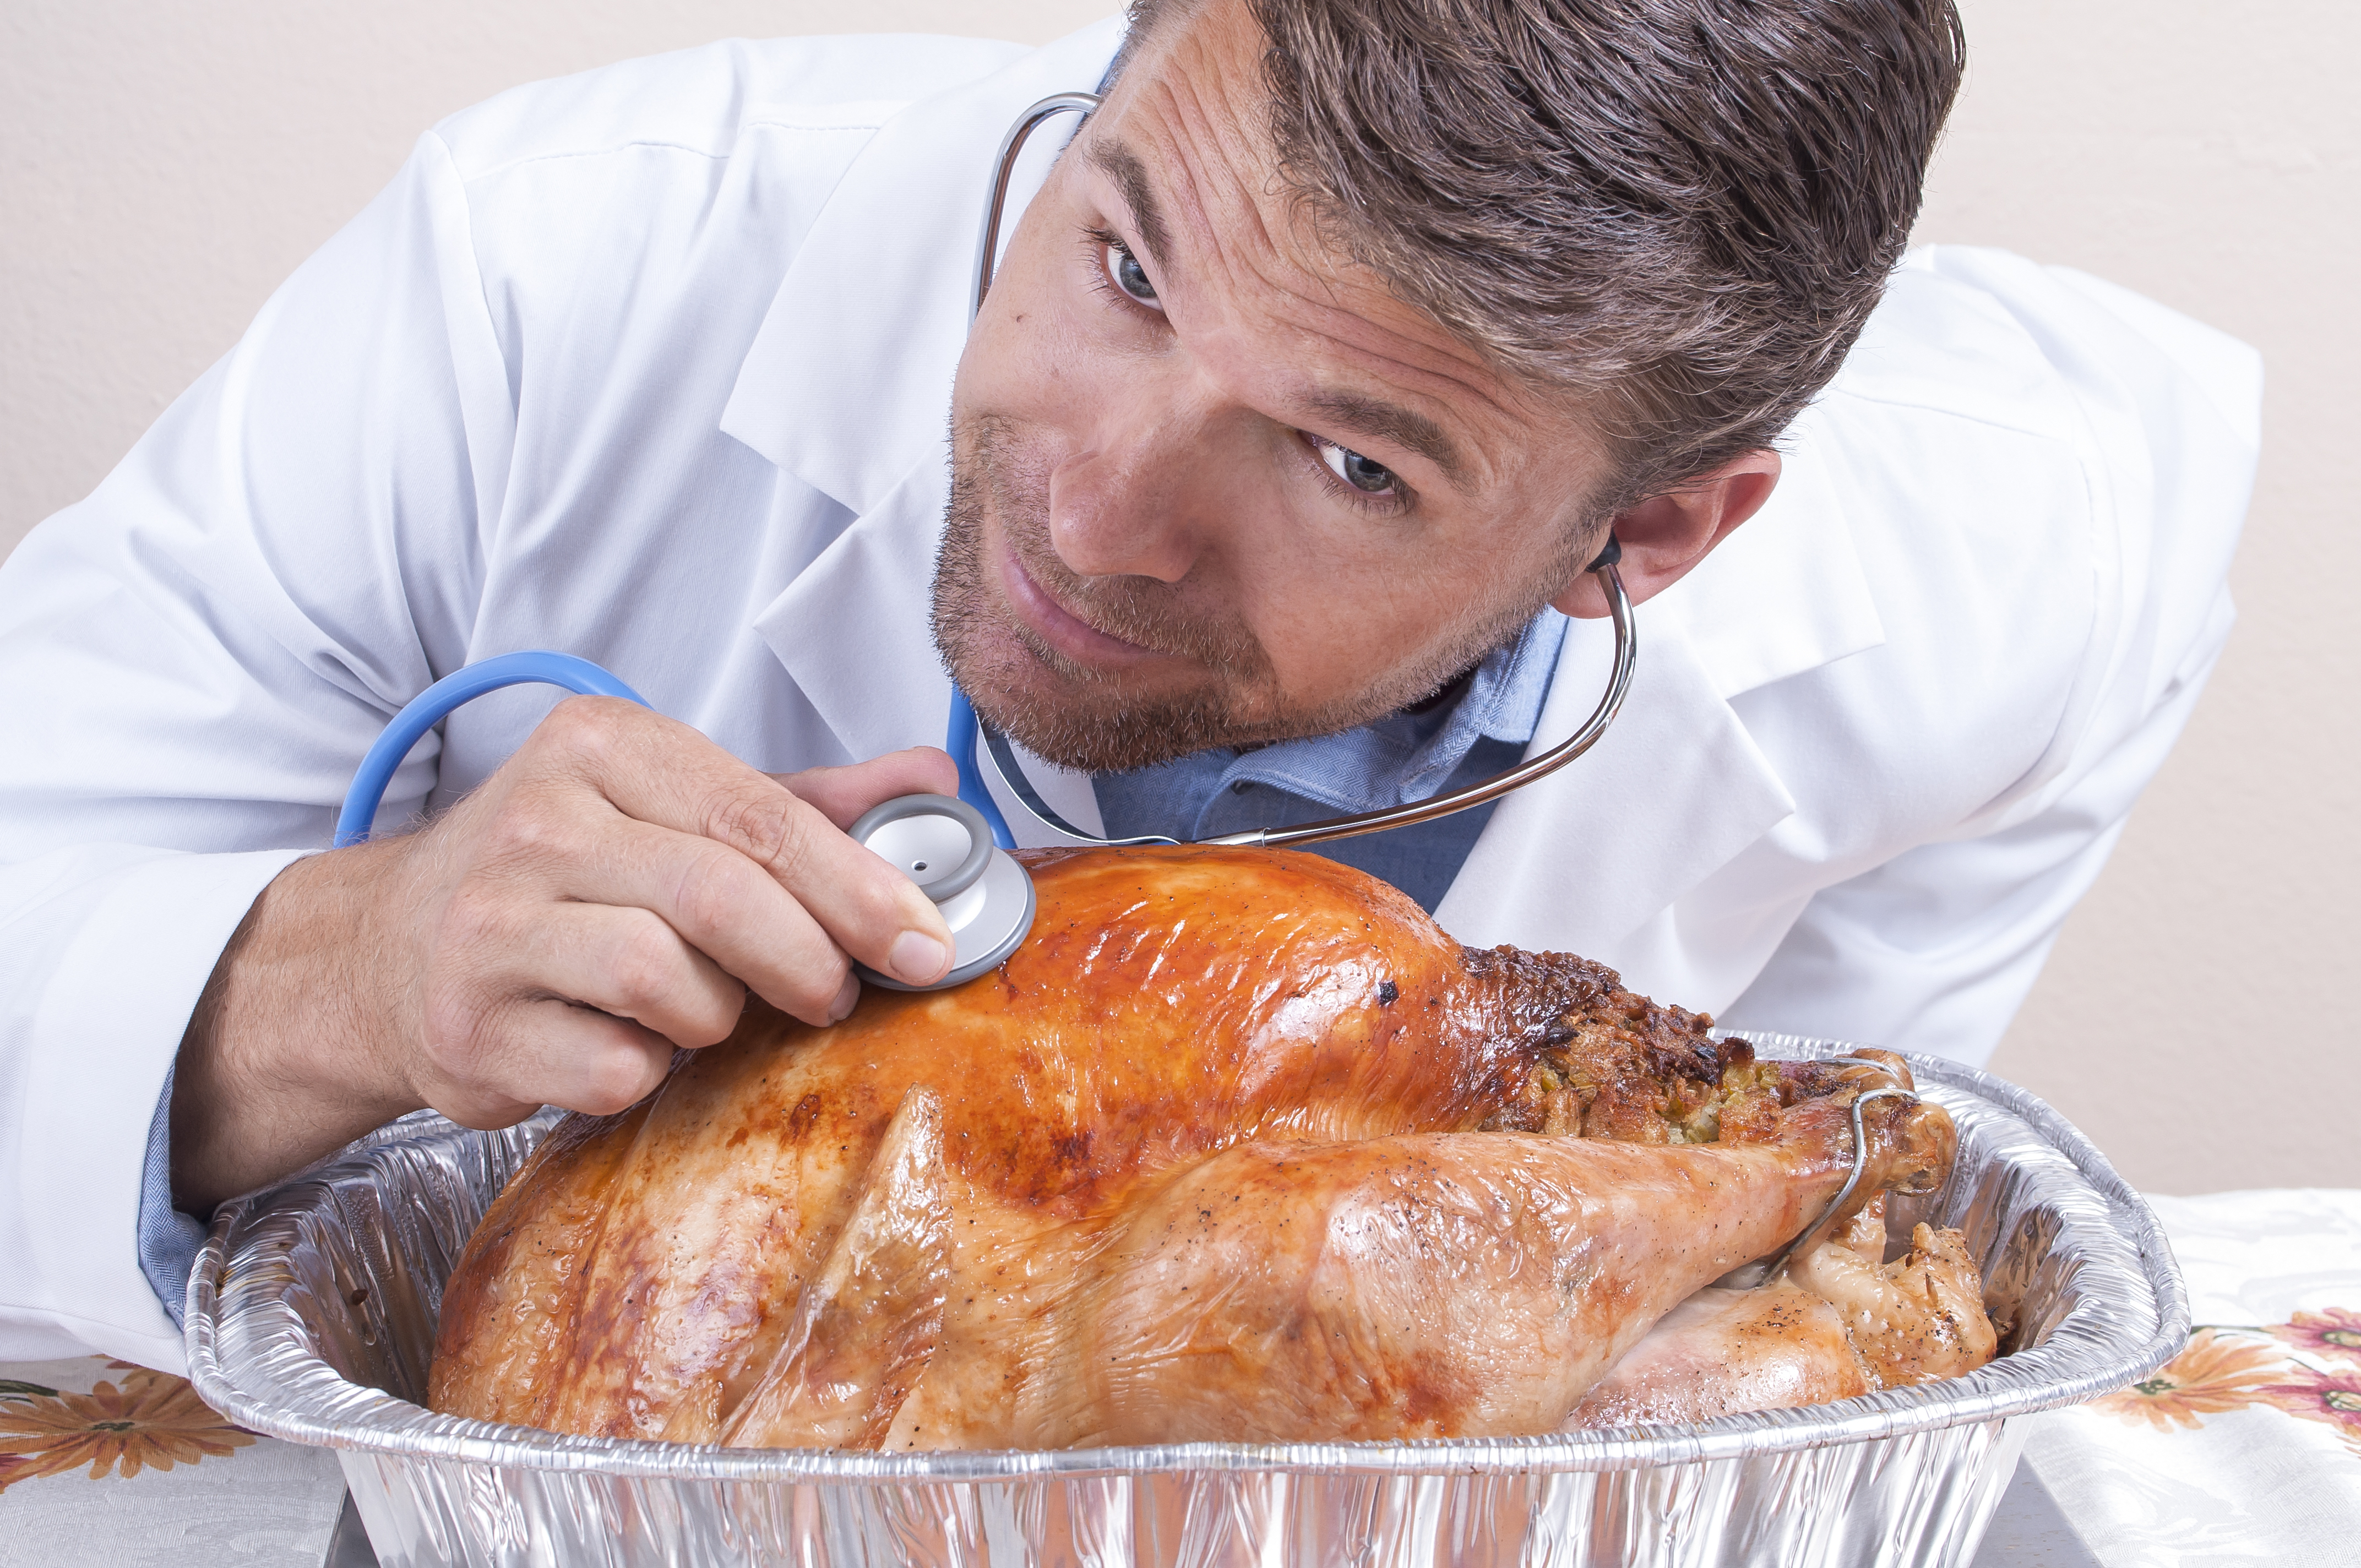 Working on Thanksgiving: What it's like for Healthcare Professionals